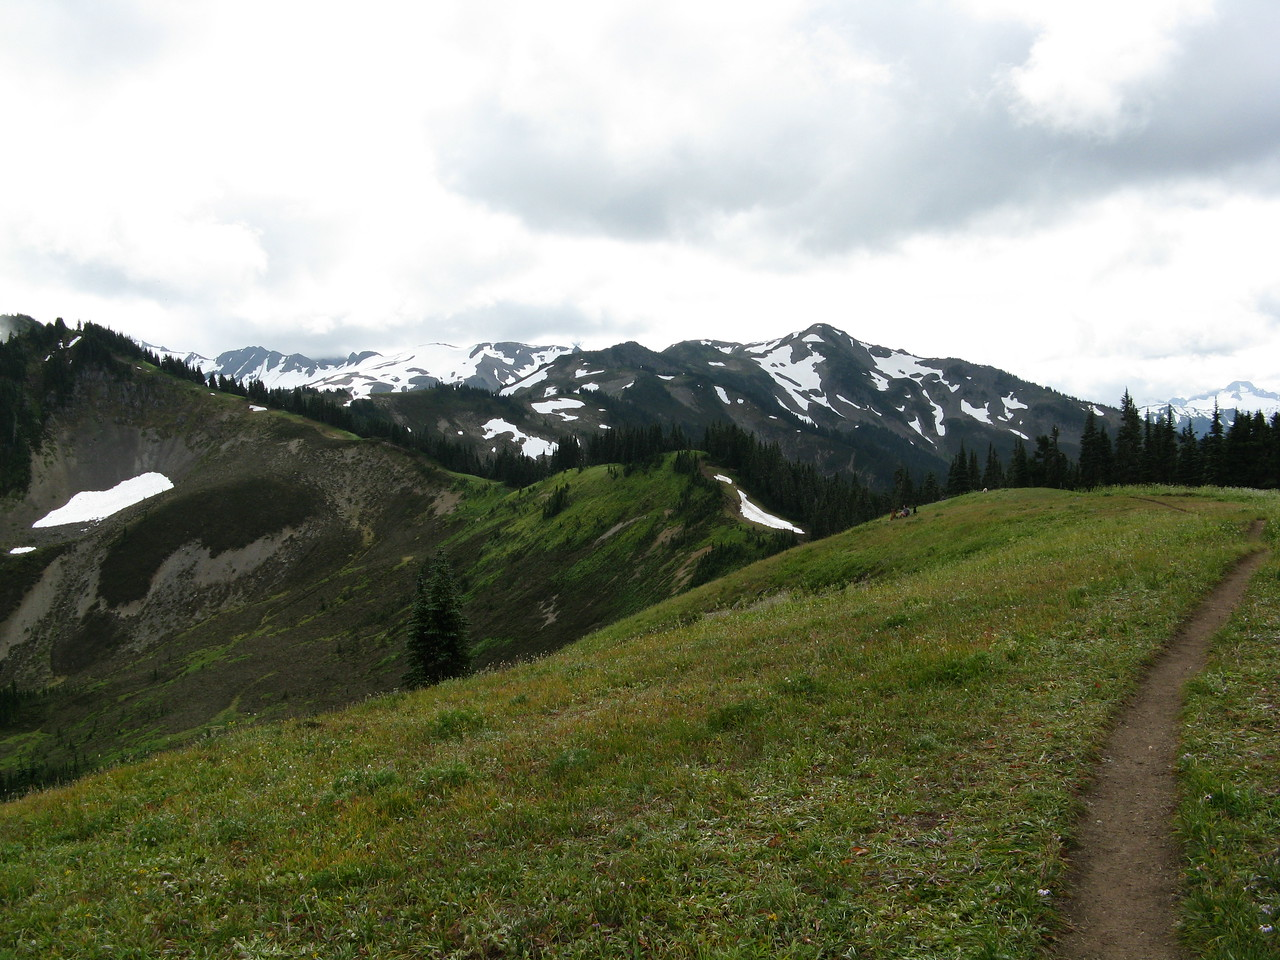 Another look across the meadow to where Mount Baker ought to be, above these mountains and to the left.